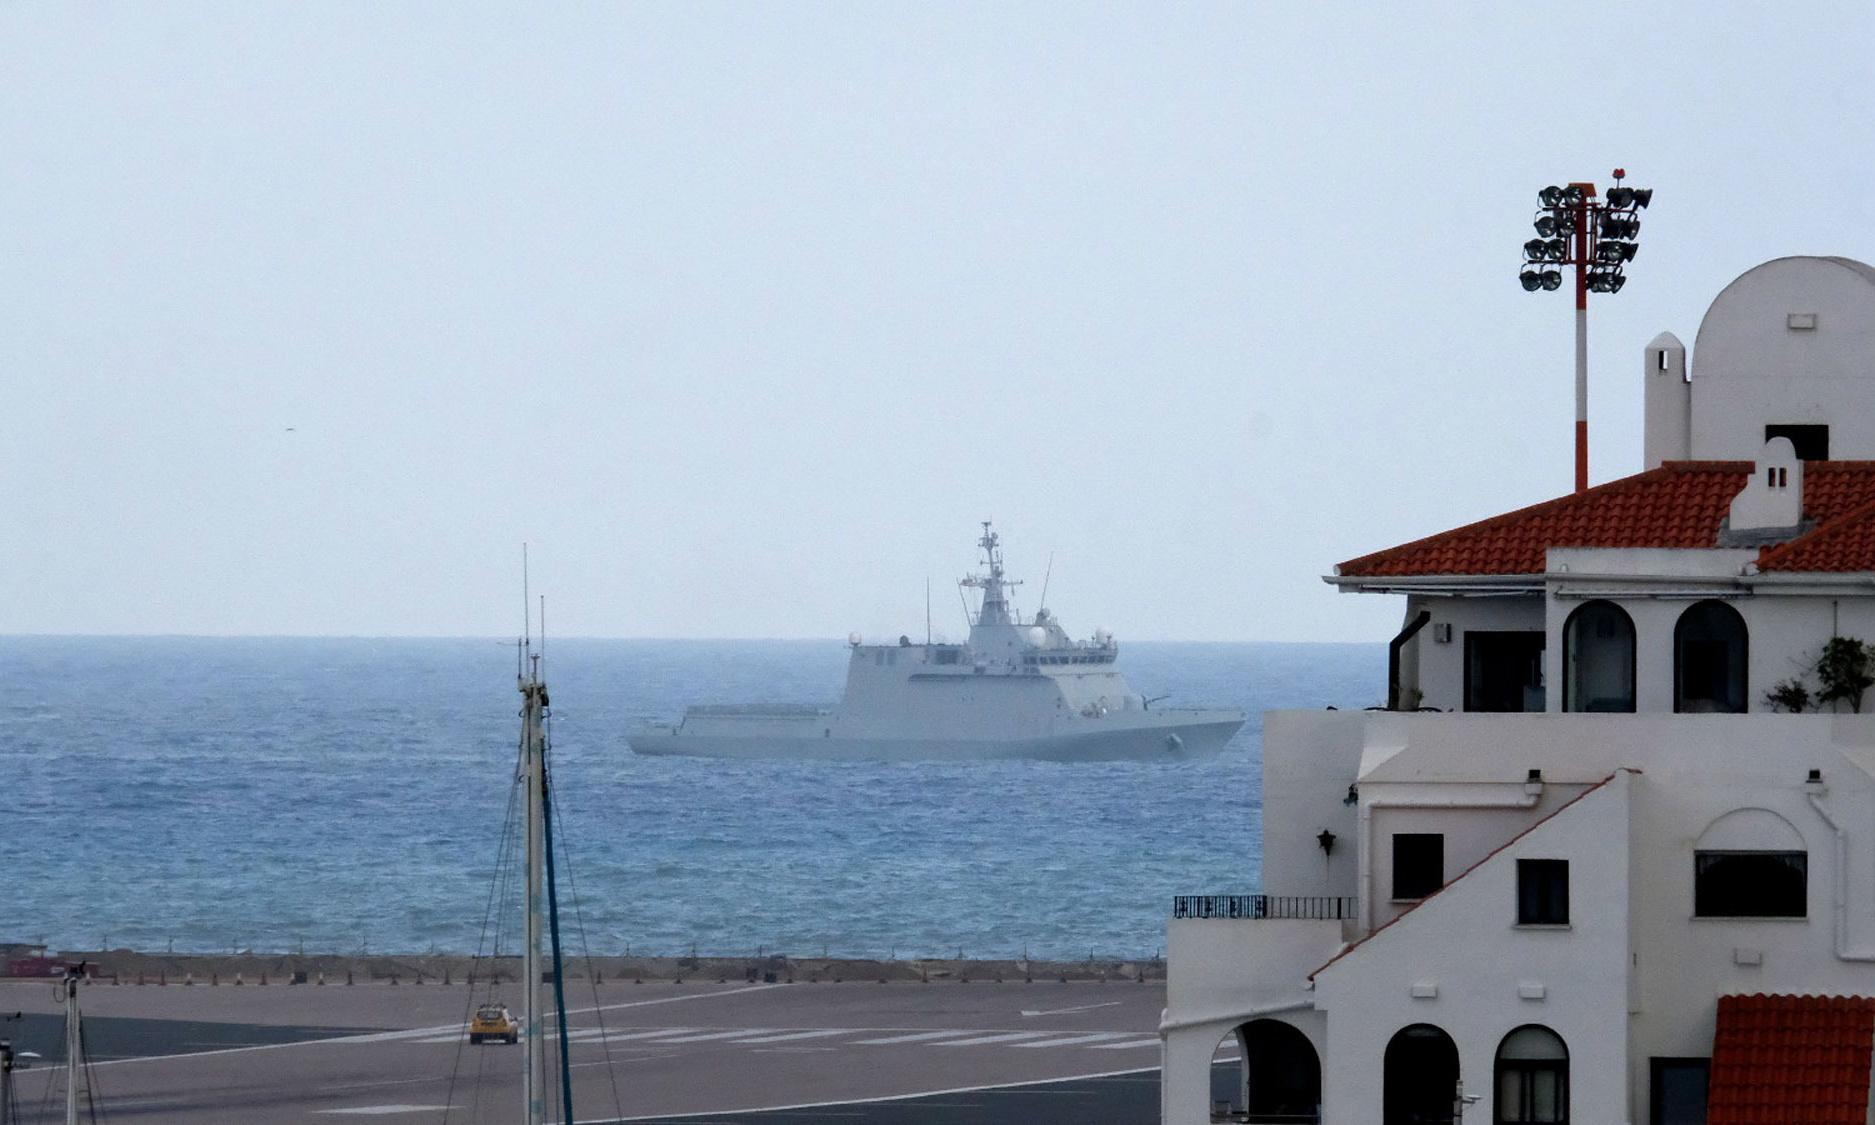 Spanish warship orders Gibraltar boats to leave British waters